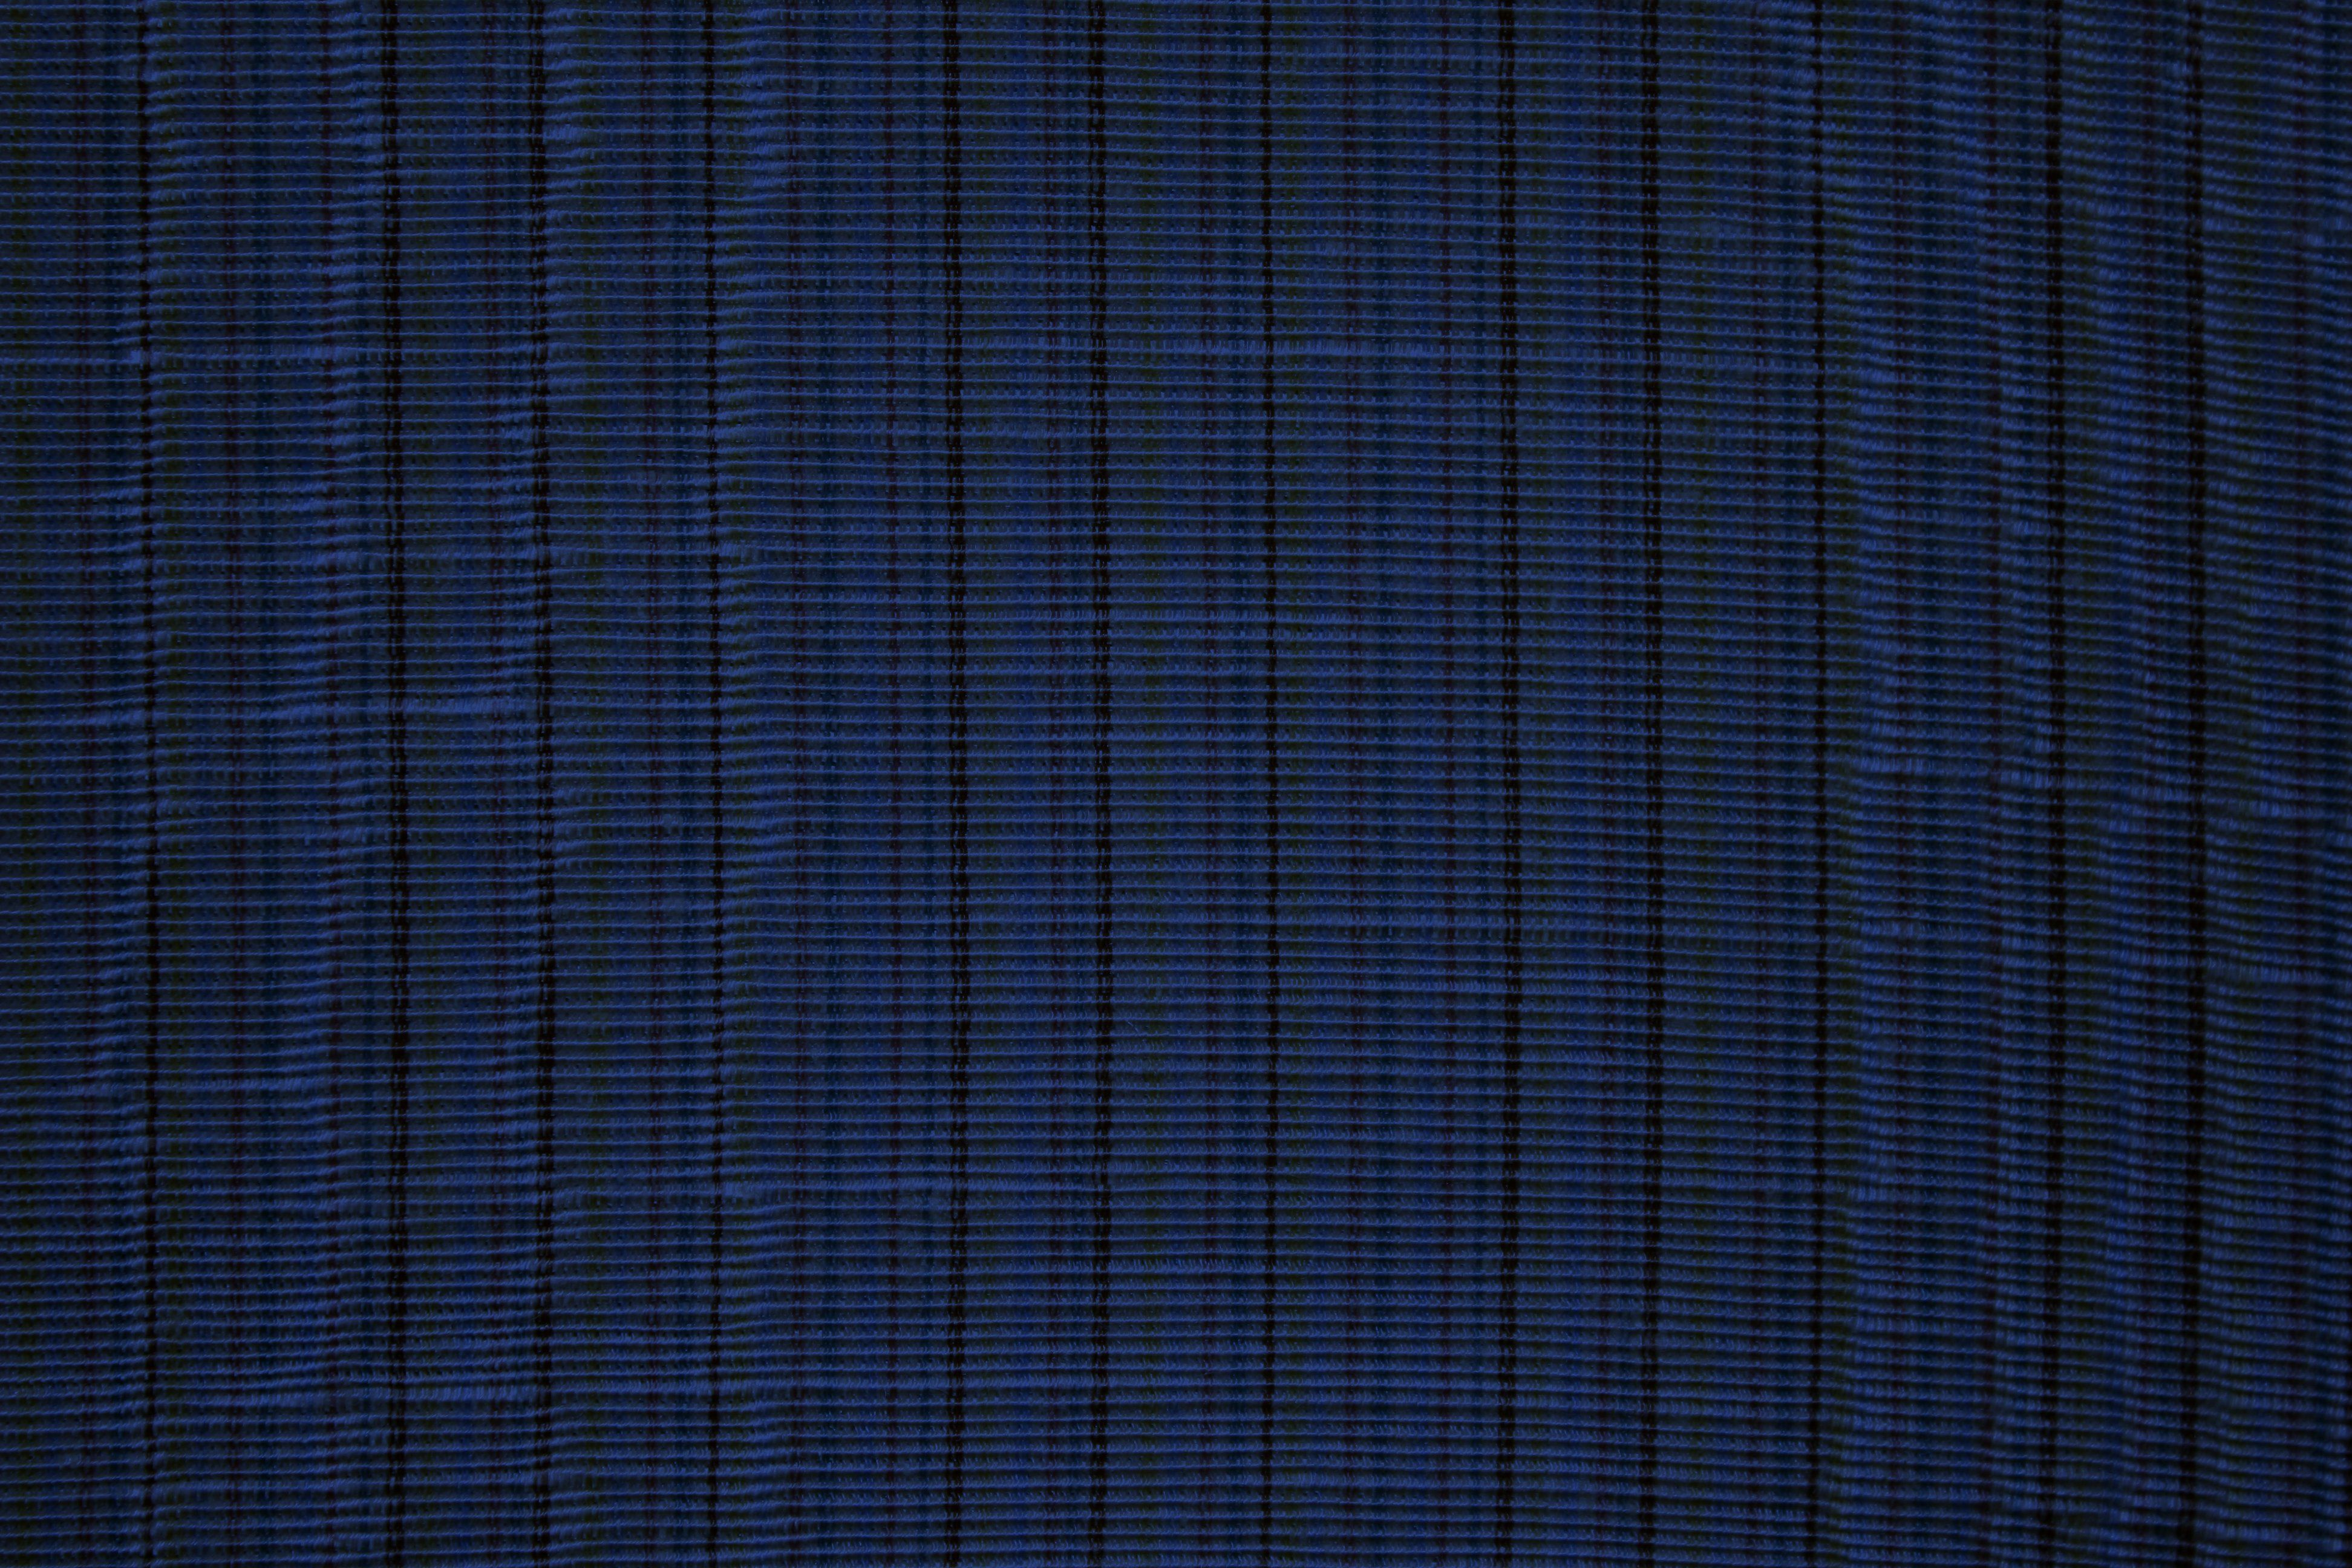 Navy Blue Upholstery Fabric Texture with Stripes Dimensions 3888